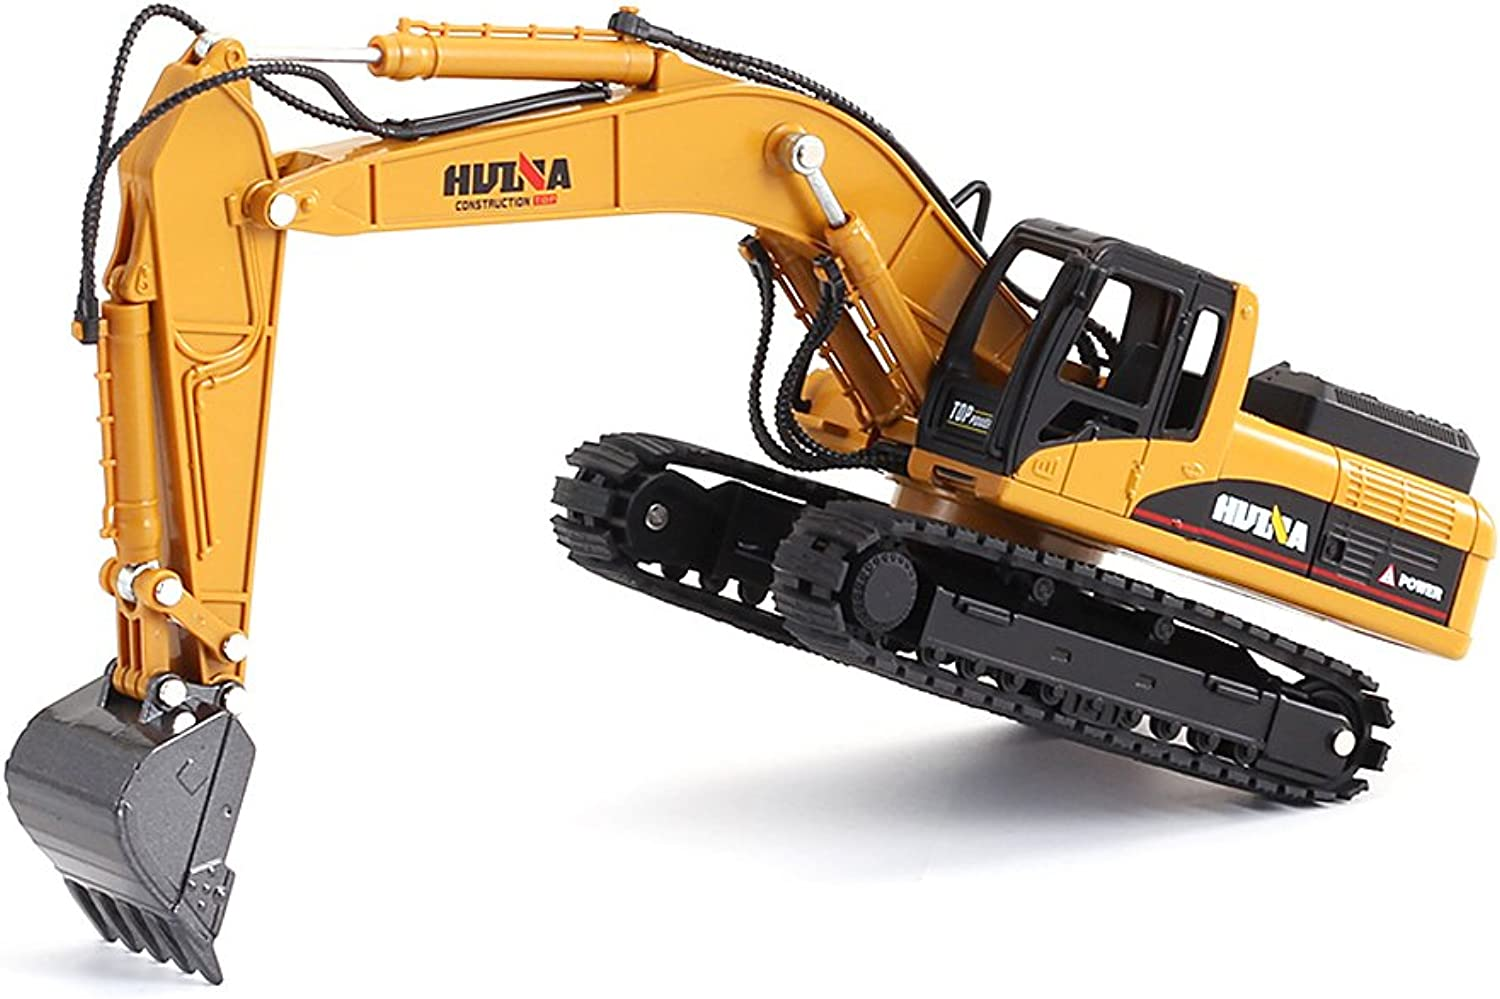 1 50 Scale Diecast Crawler Excavator Construction Vehicle Car Models Toys for Kids